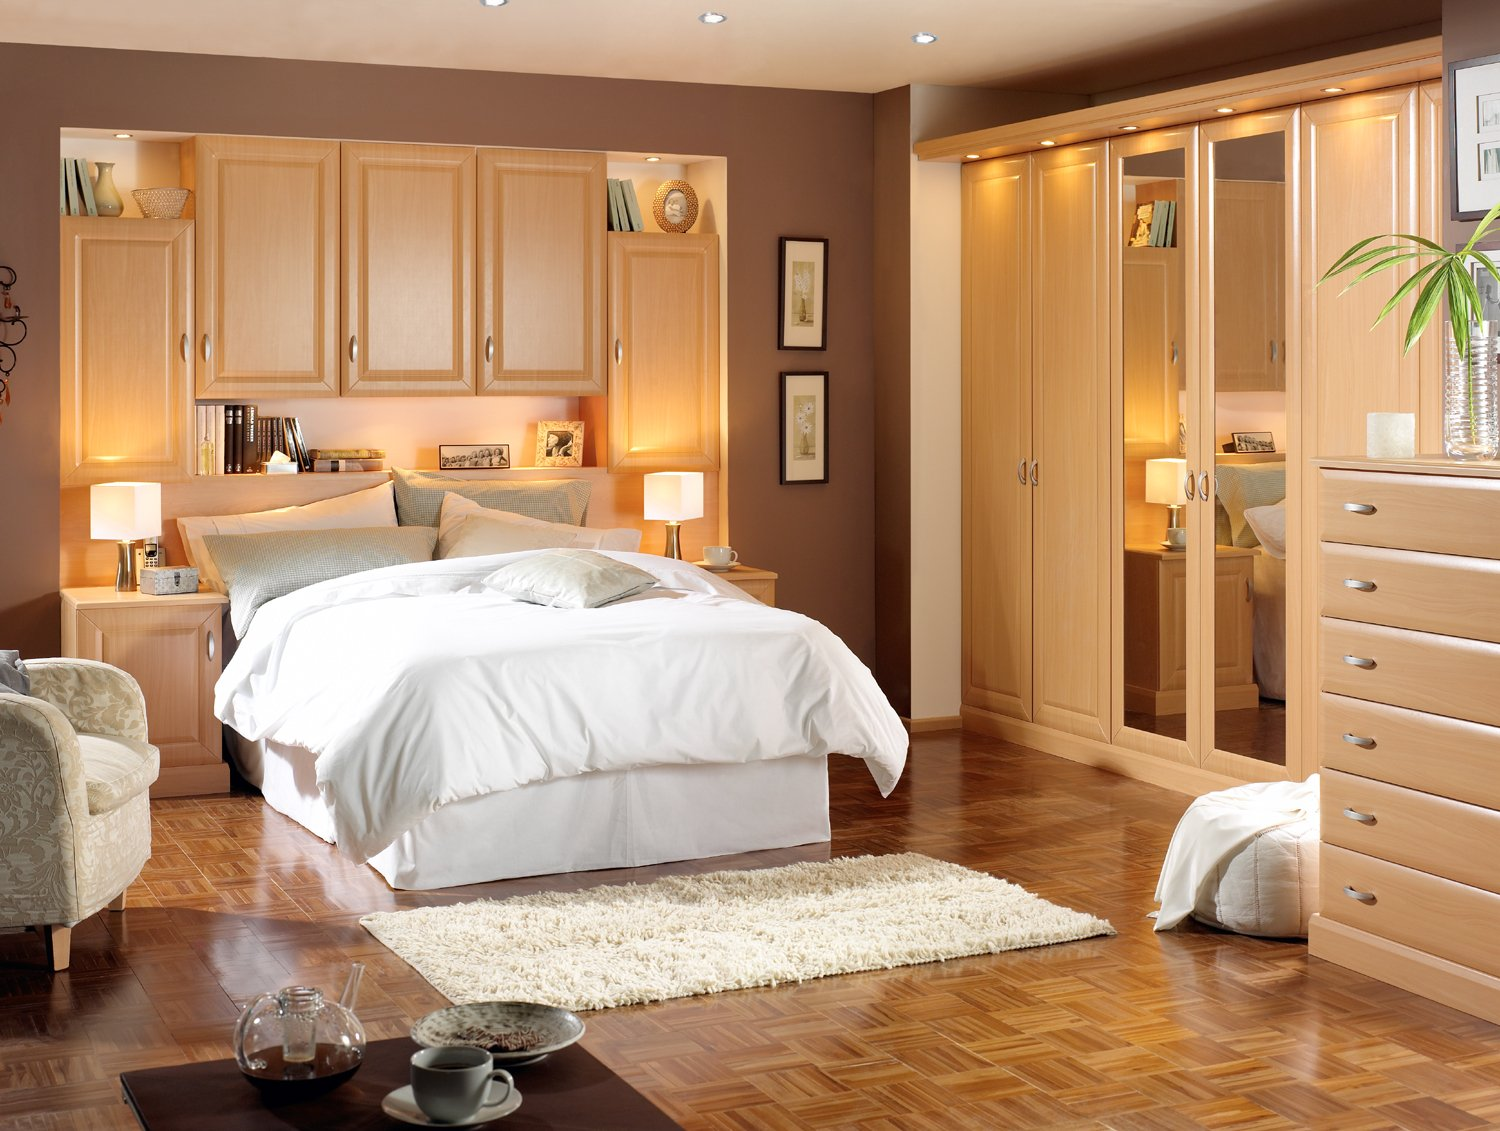 beige-bedroom-design-featuring-delectable-wood-closet-furniture-units-with-mirror-also-completed-with-bed-cabinets-storager-over-white-bedsheets-paired-with-sofa-units